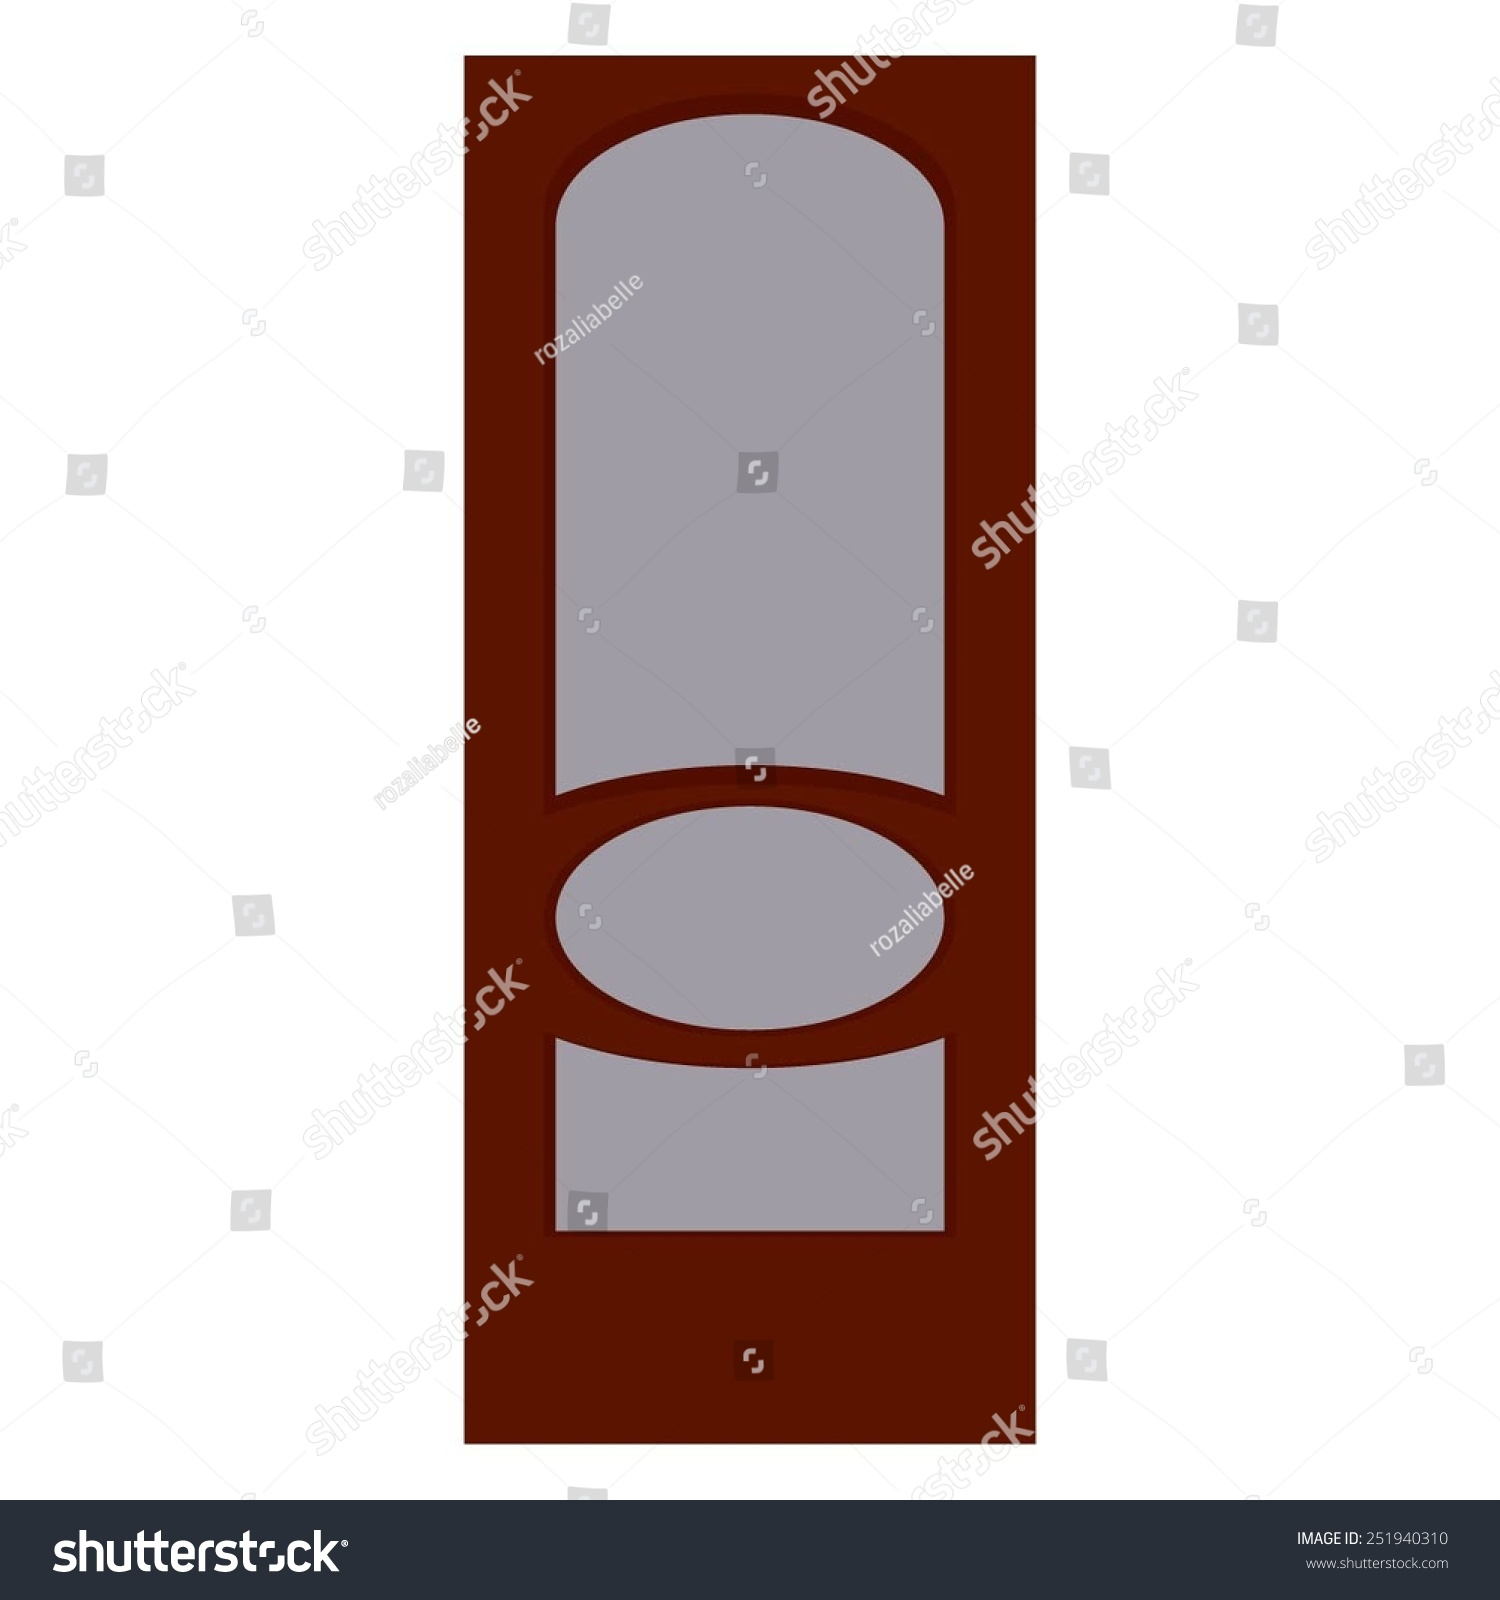 Vector Illustration Of Brown Interior Doors With Frosted Glass.